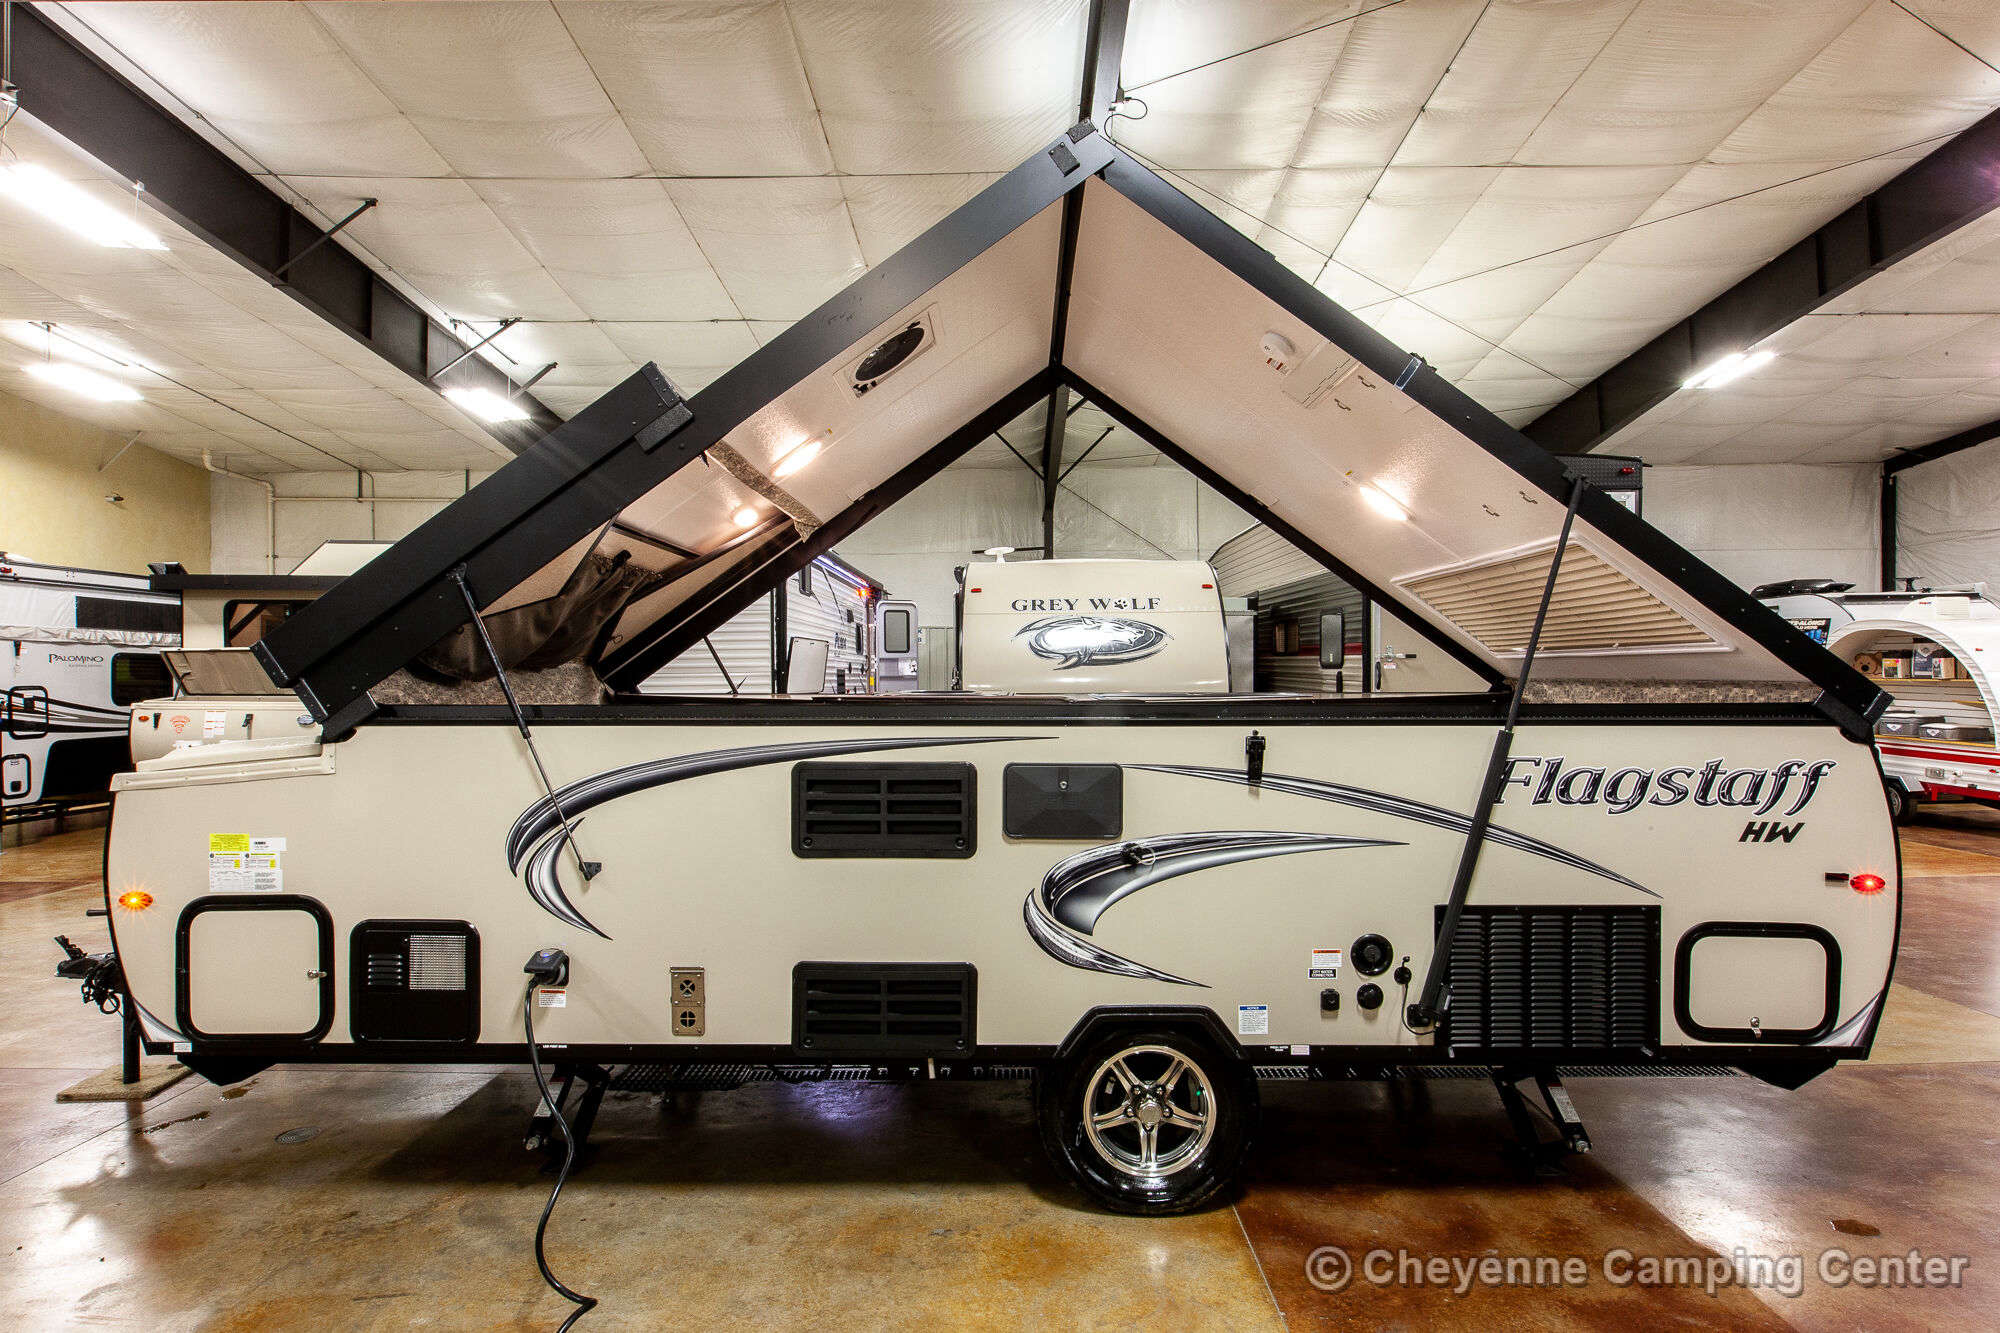 2019 Forest River Flagstaff High Wall T21TBHW Folding Camper Exterior Image